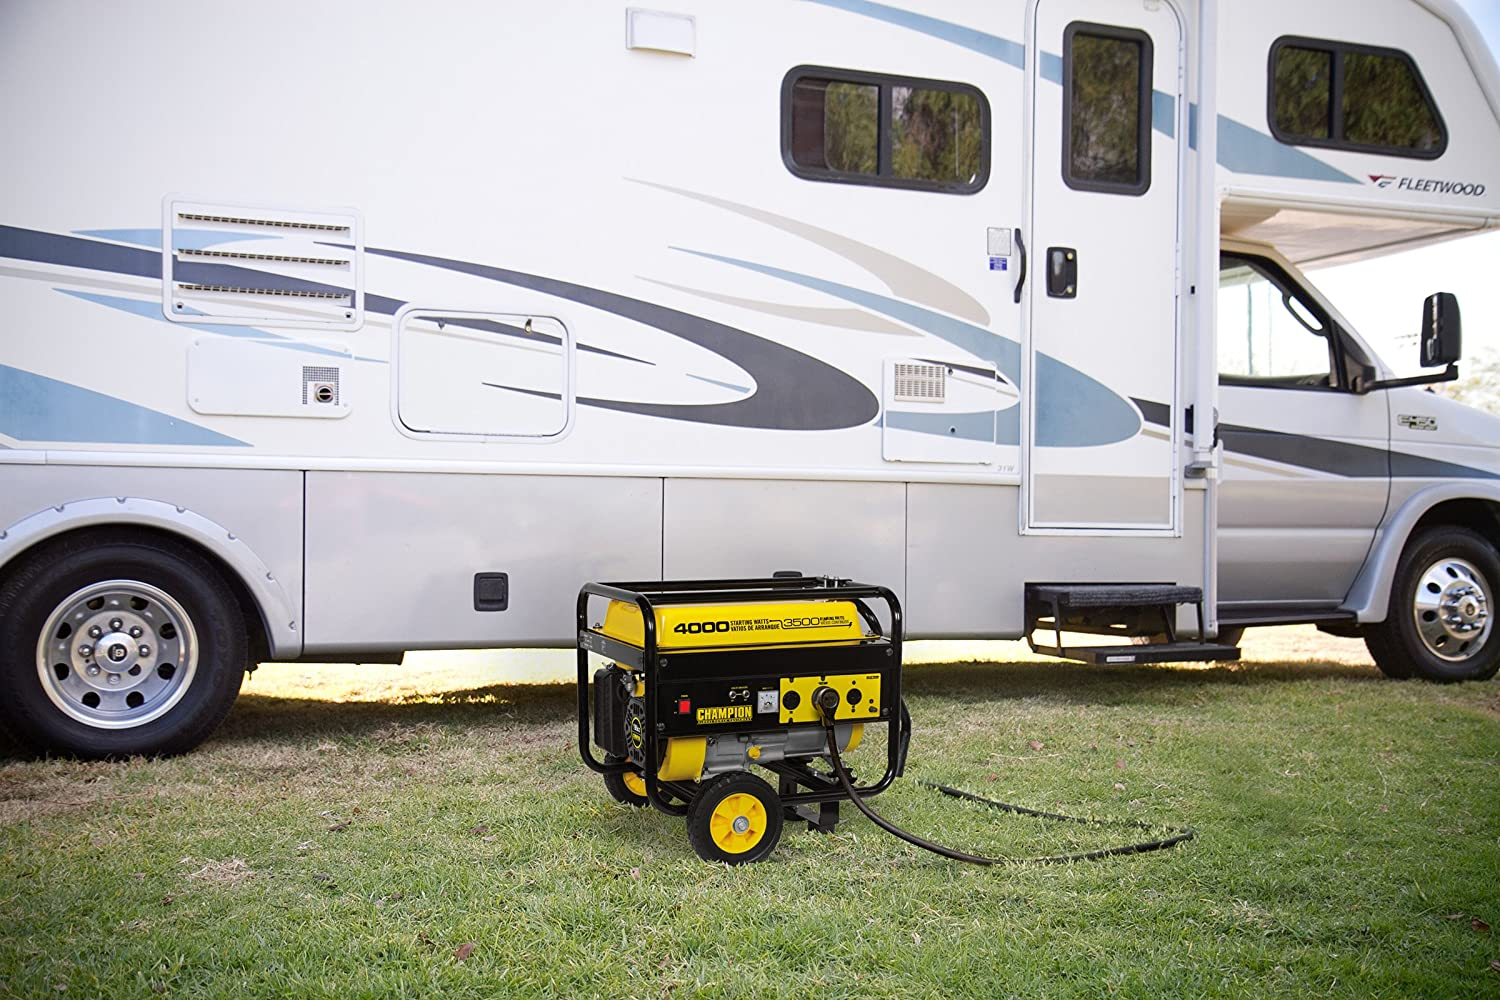 Camping generator in front of RV